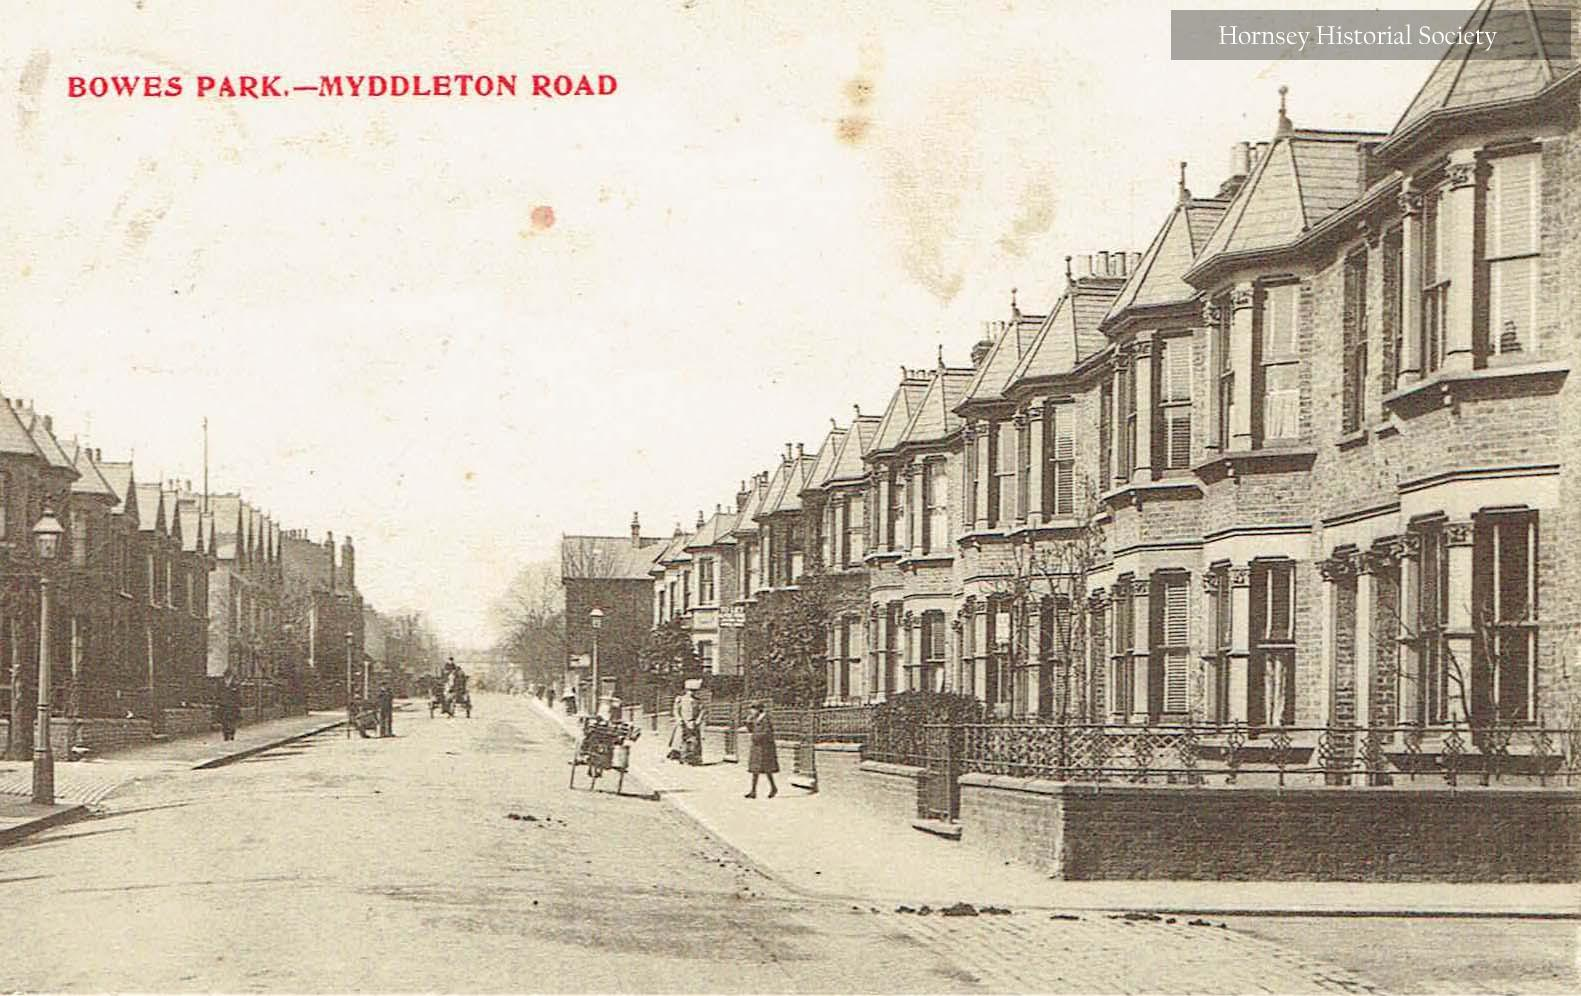 Myddleton Road - Bowes Park